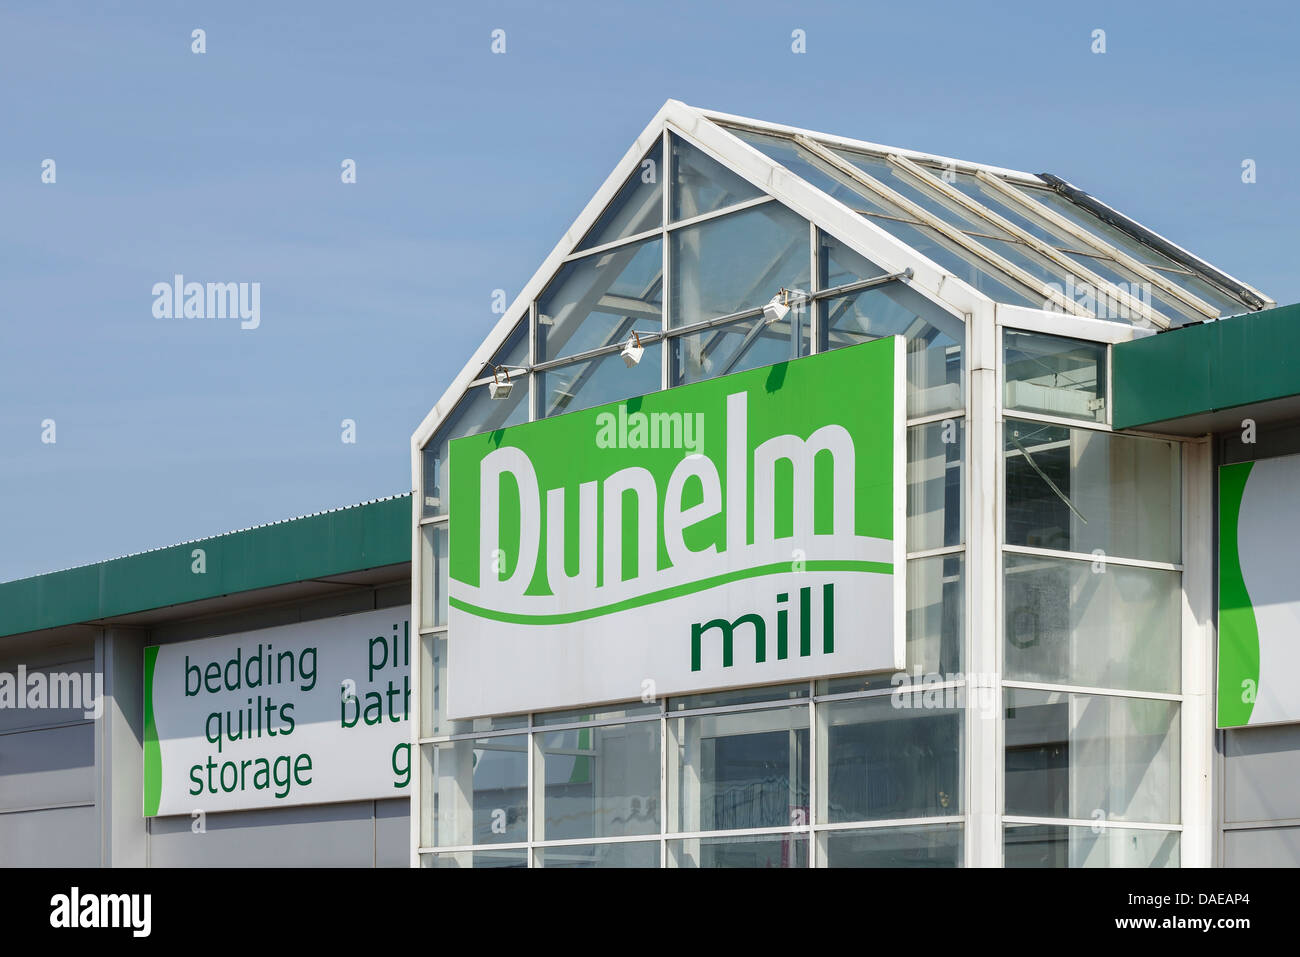 Dunelm Mill store on a retail park - Stock Image